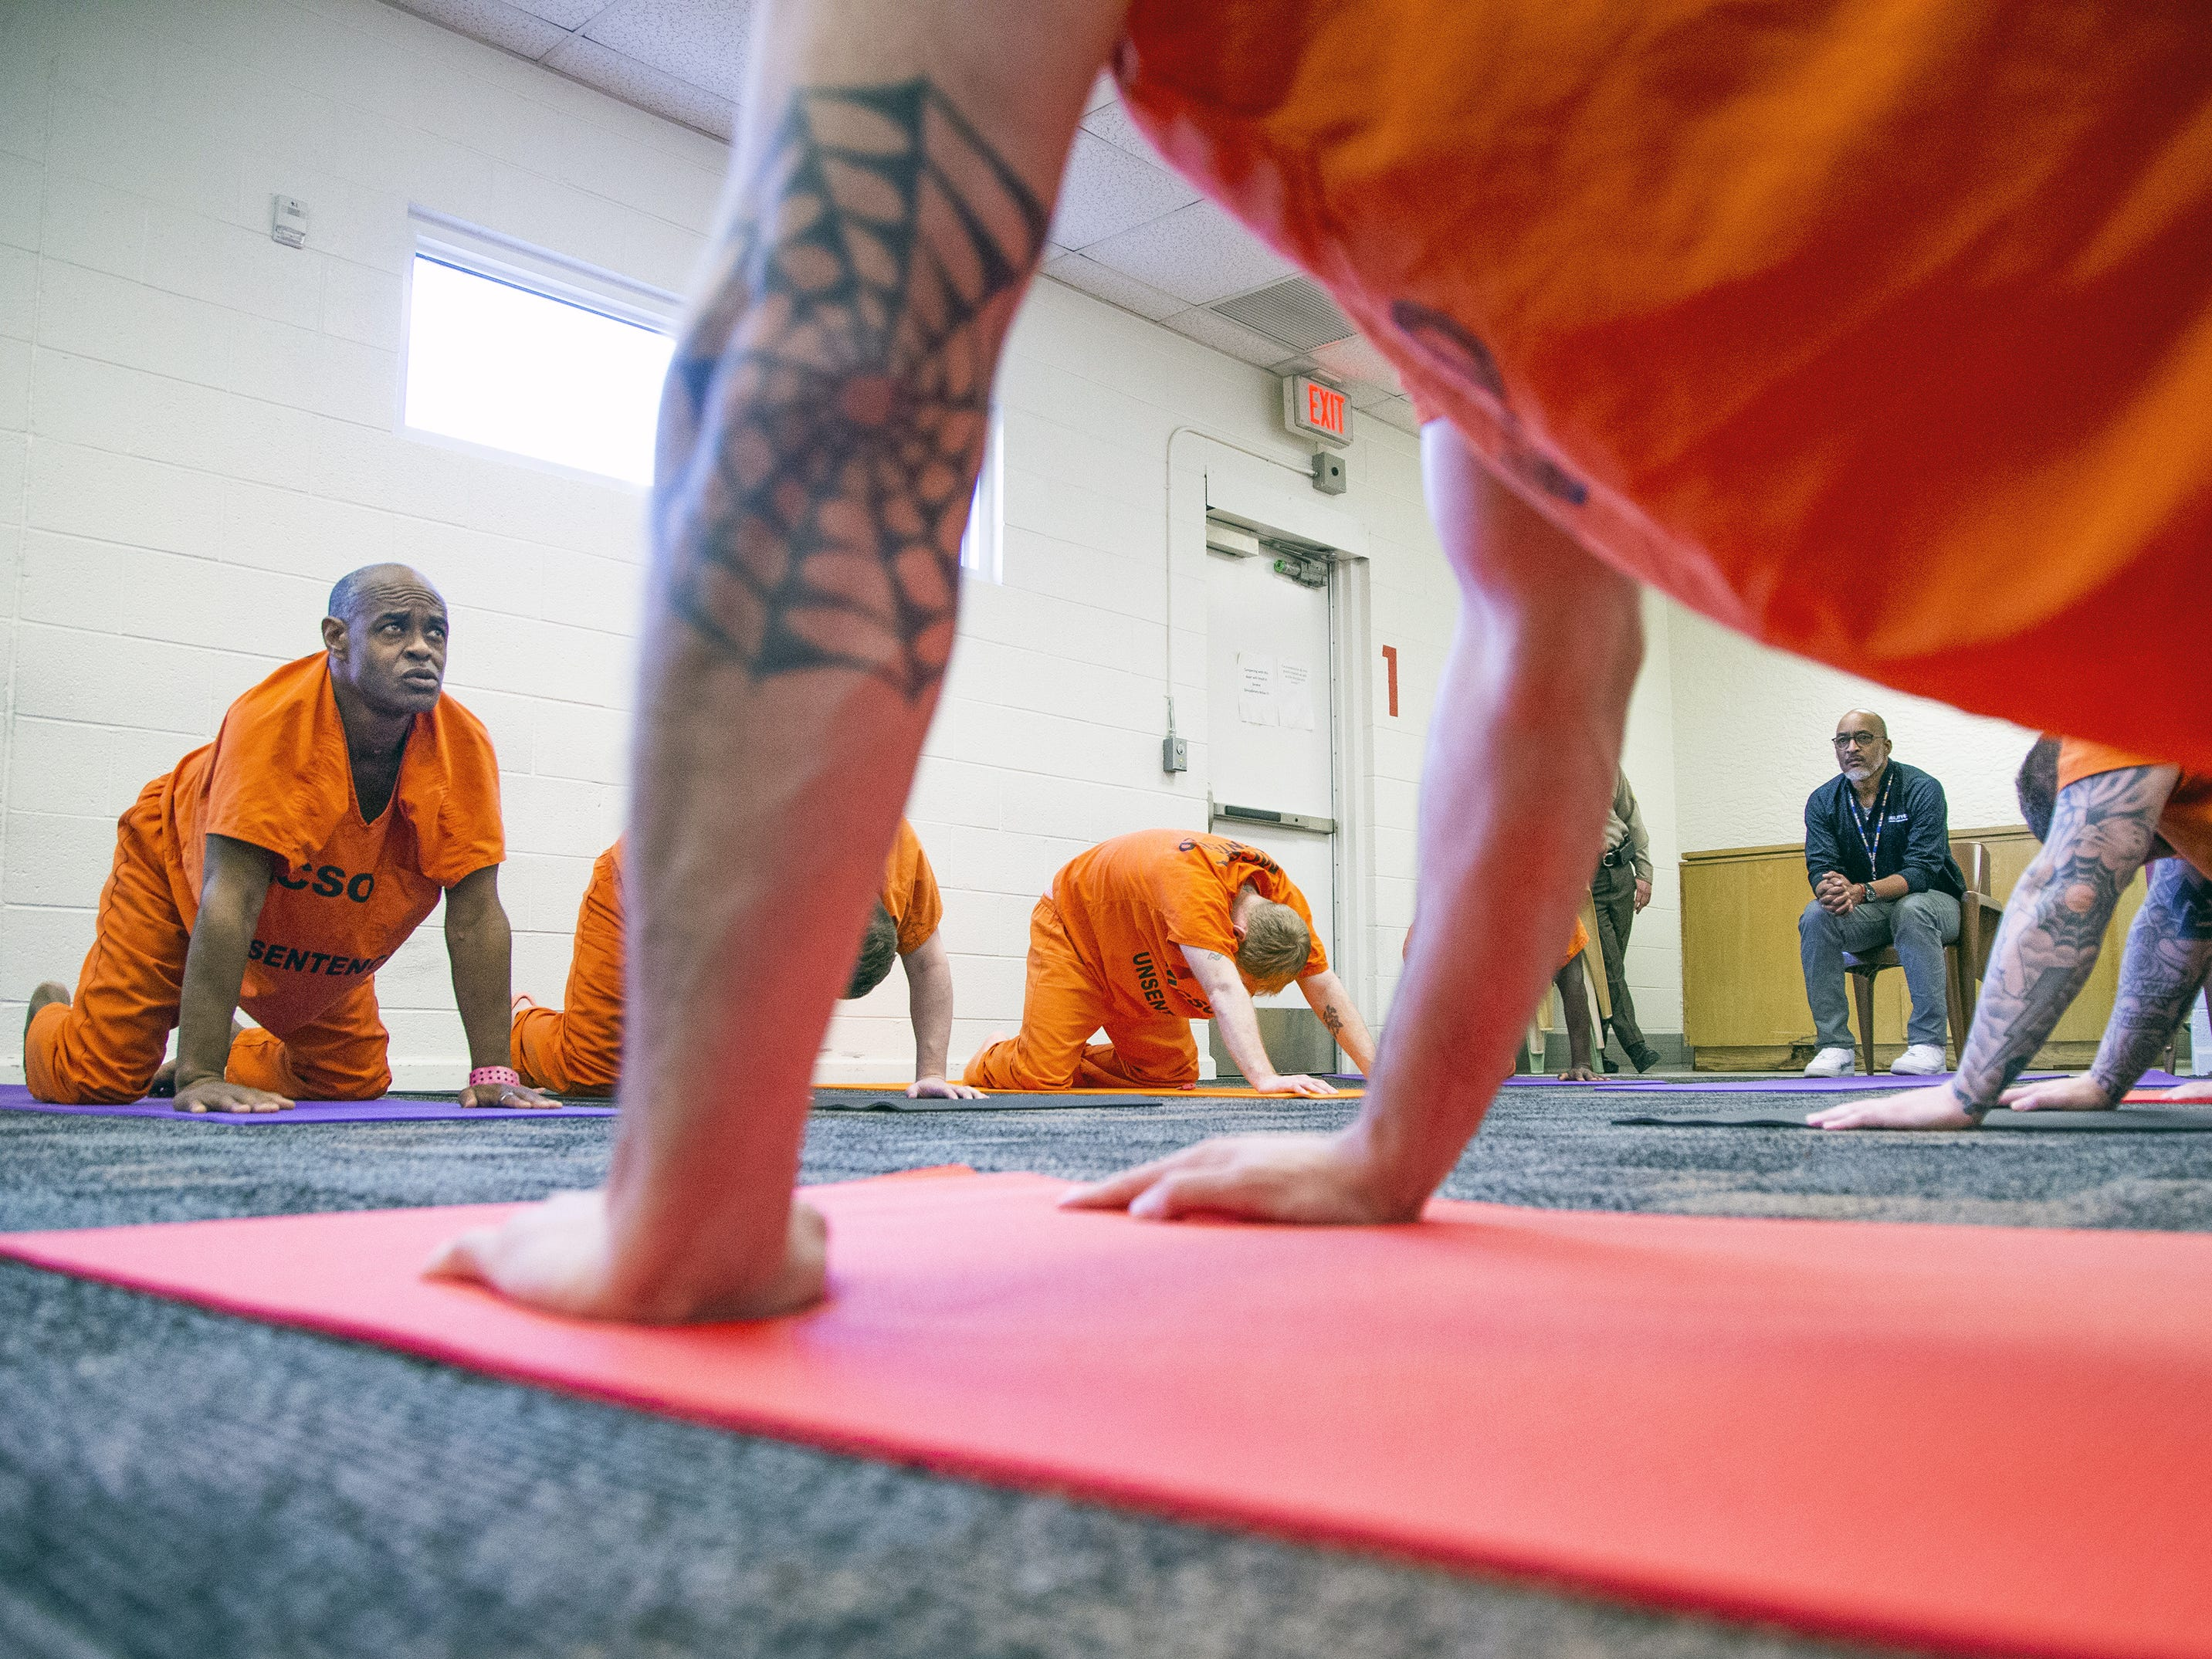 Dr. Julian Wyatt (at right in black shirt),  the director of the Prison Yoga Project Phoenix, conducts a yoga class at the Maricopa County Towers Jail complex on Jan. 11, 2019.